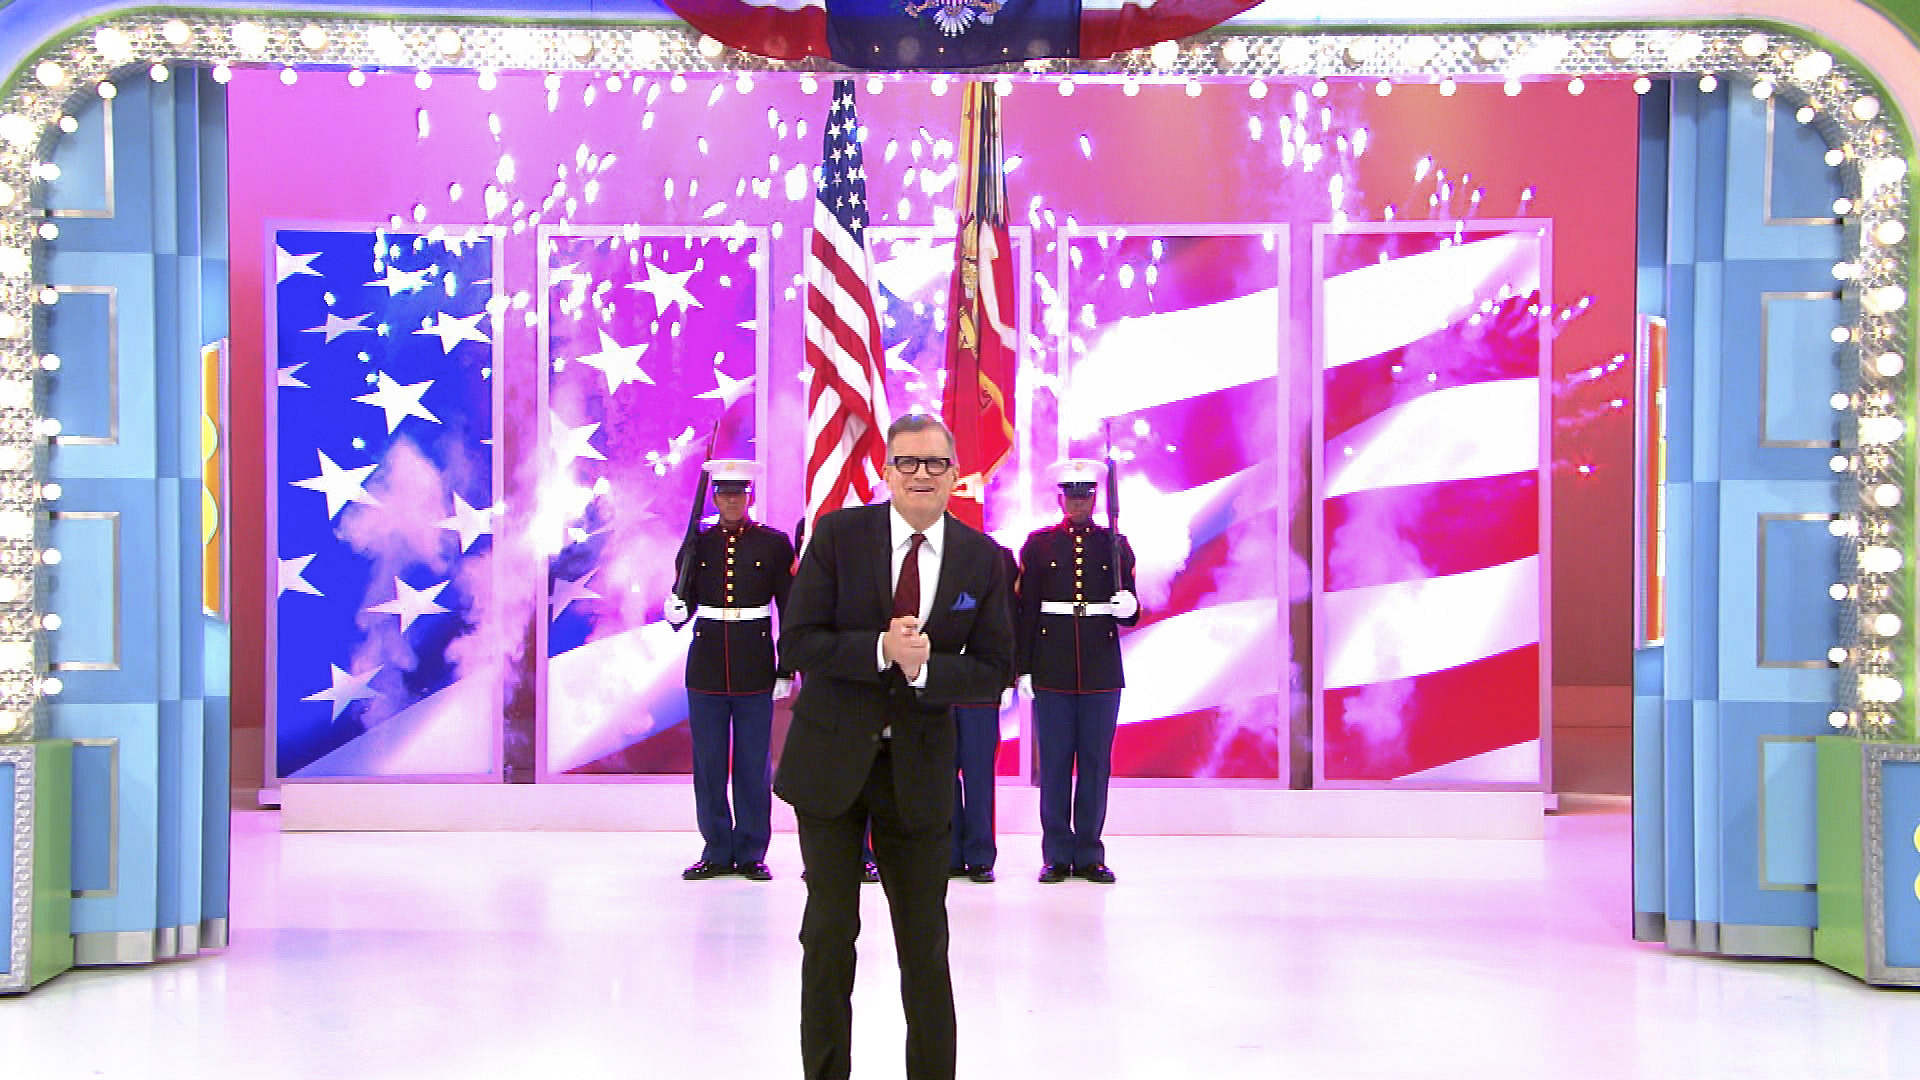 Drew Carey Celebrates with an Audience of Service Men and Women